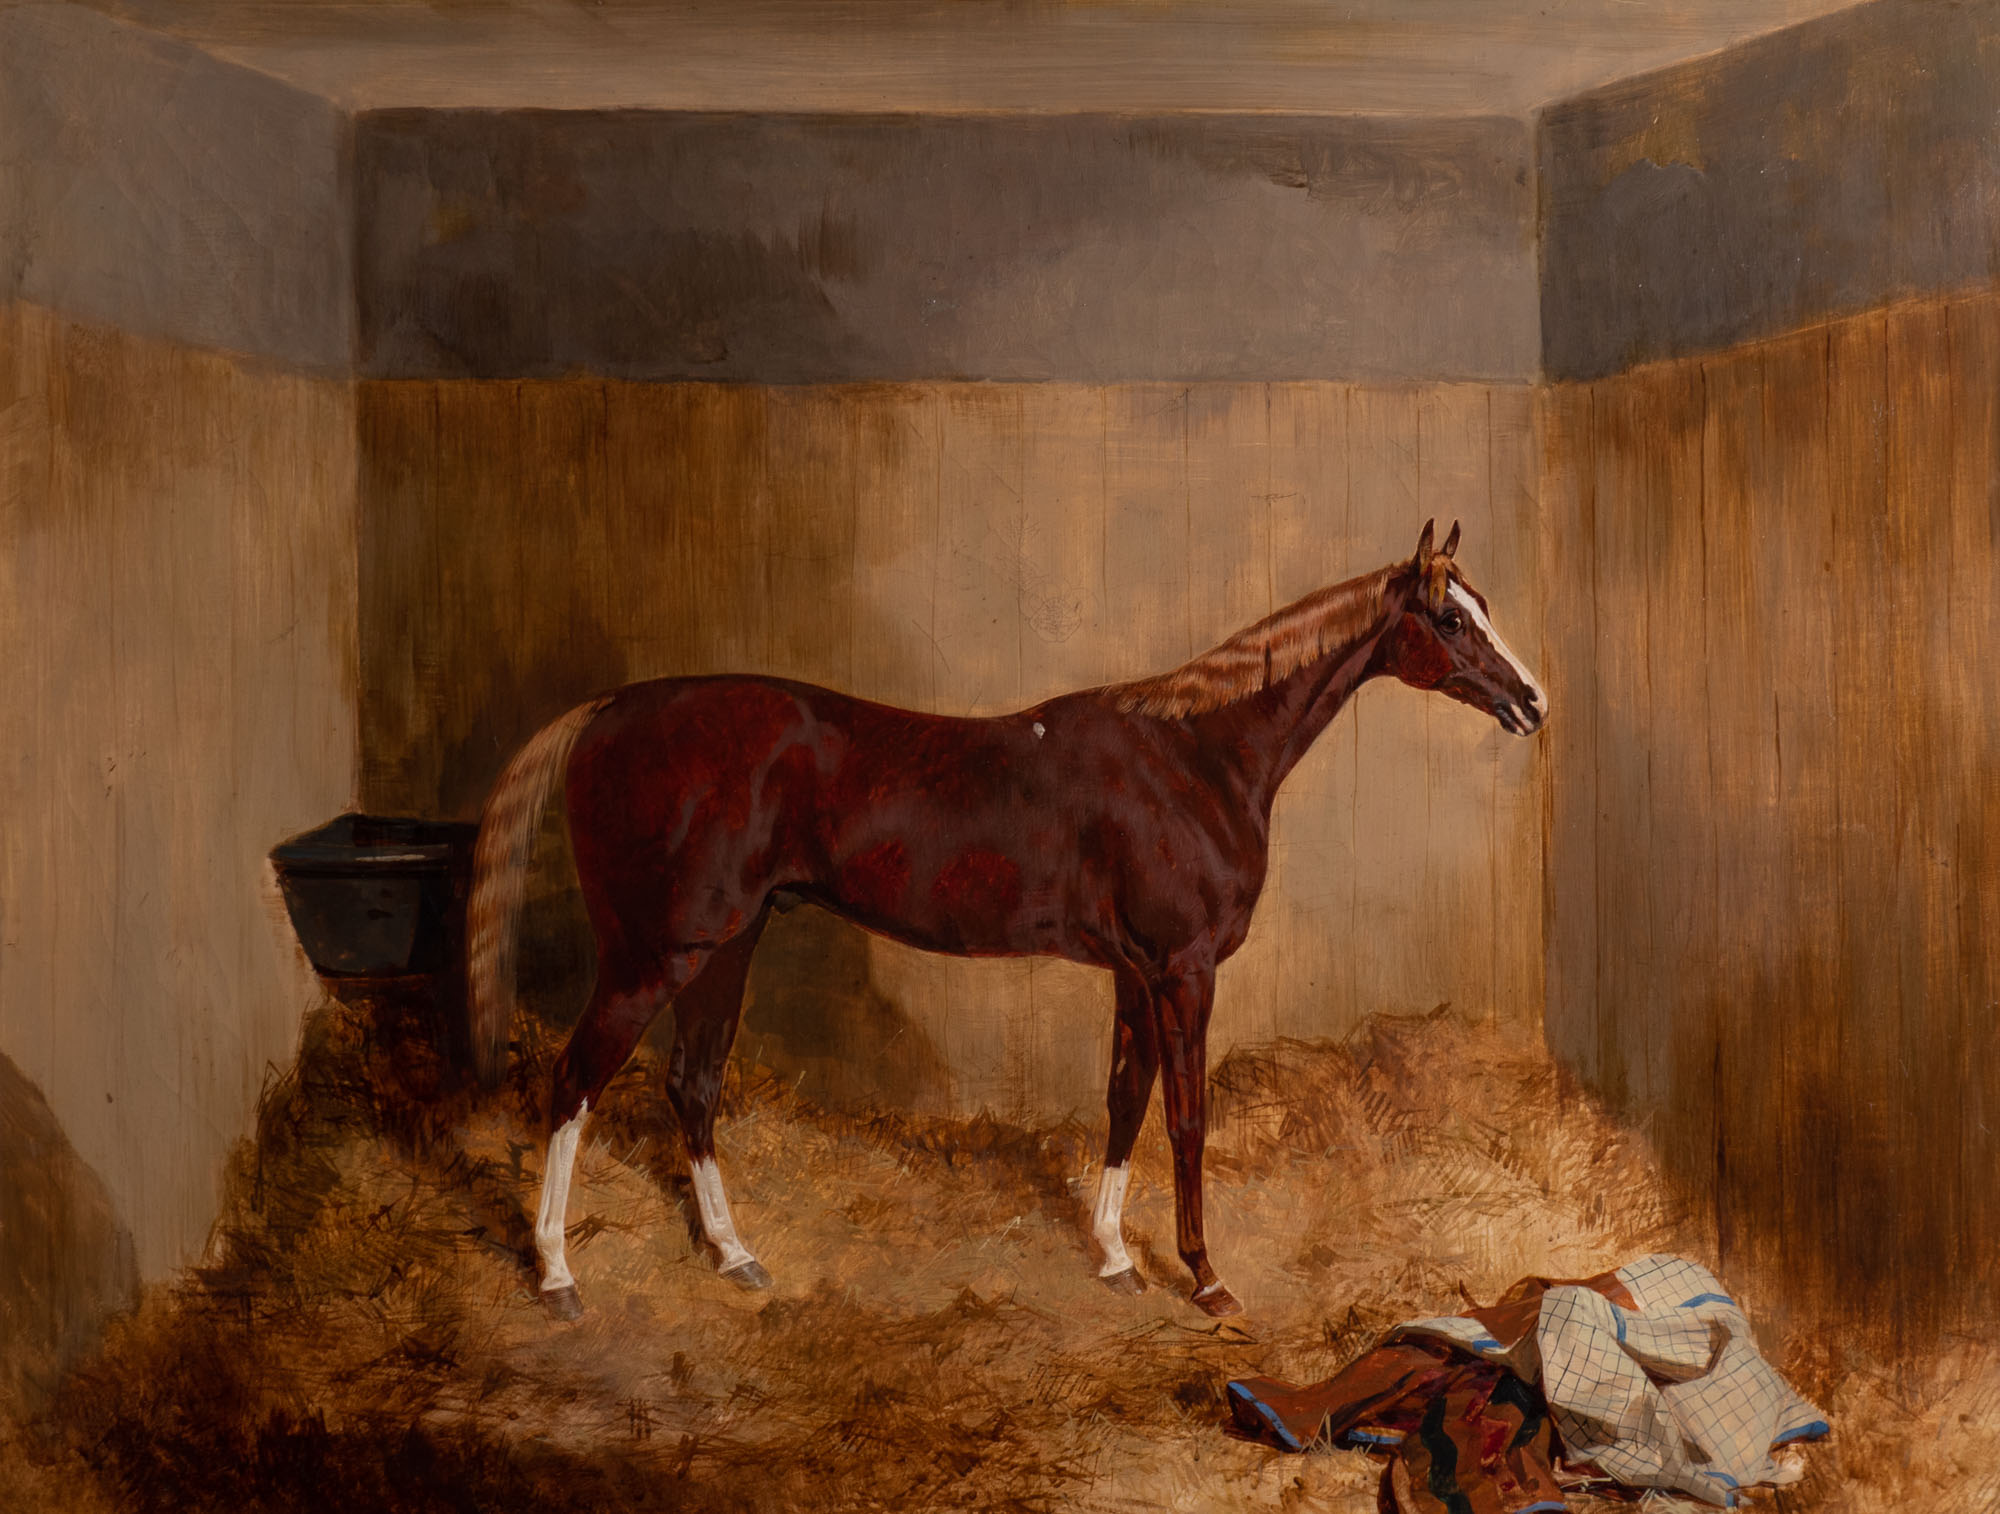 Mydas, a Strawberry Roan Racehorse in a Stable, by Harry Hall (1812-1888).